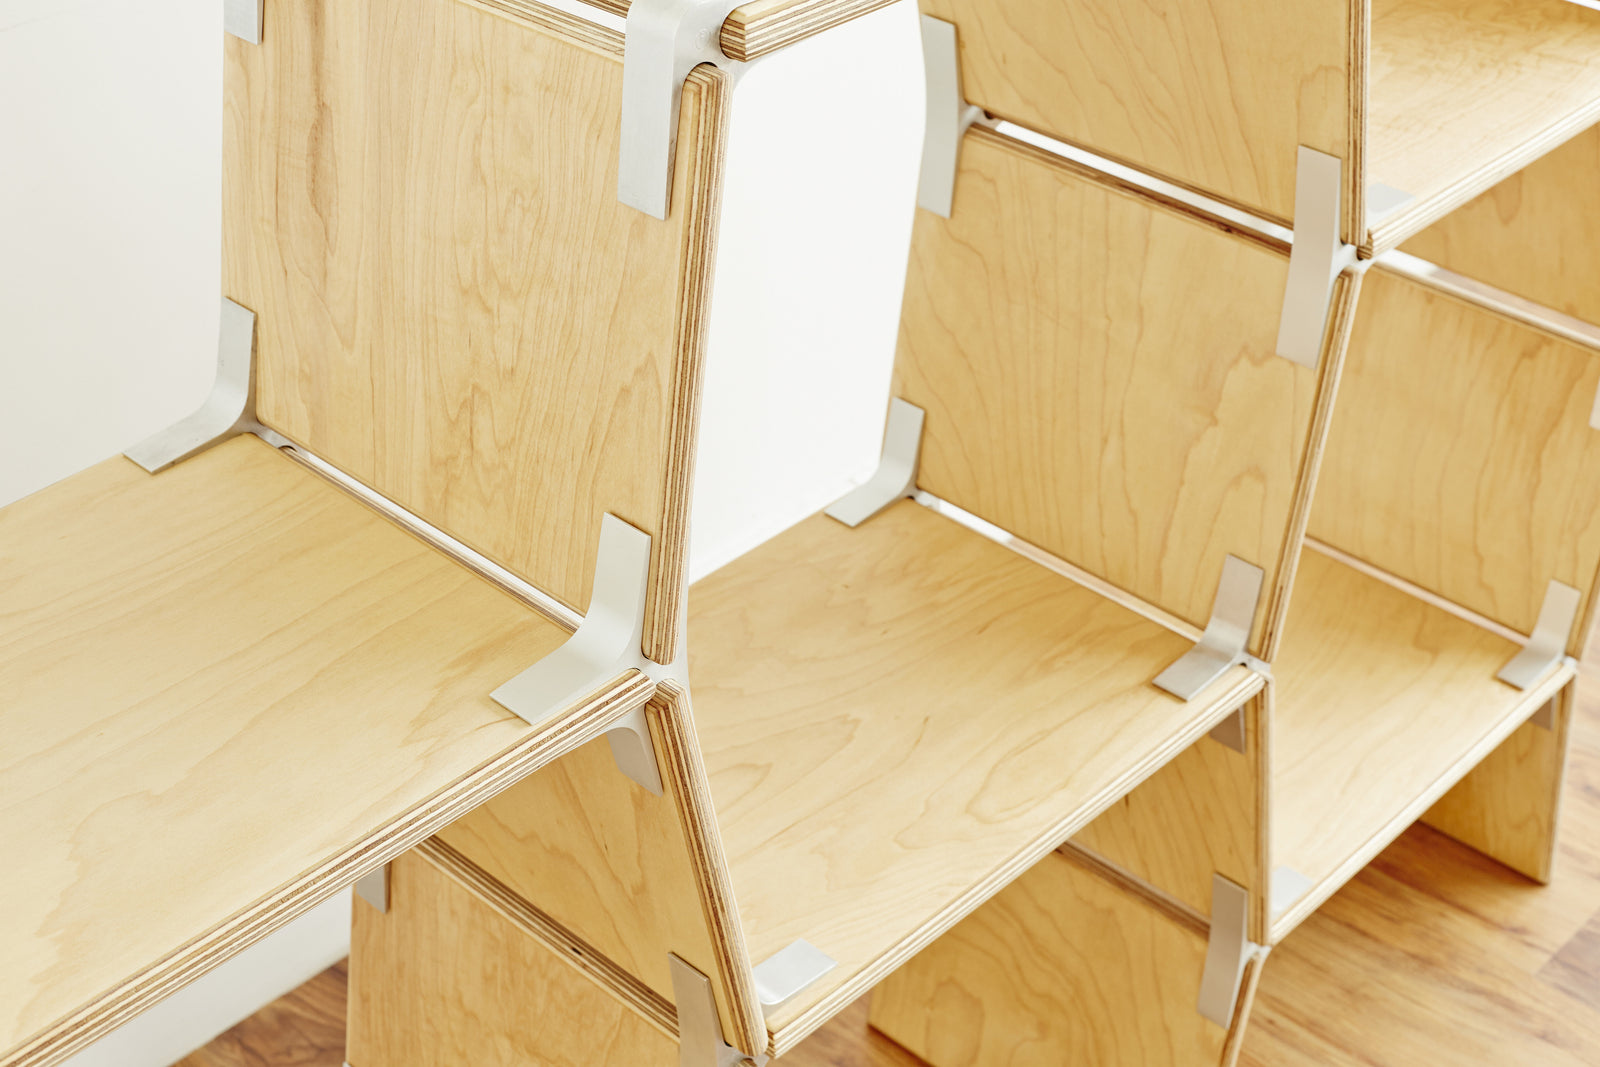 Modern modular furniture thats easy to customize and reconfigure